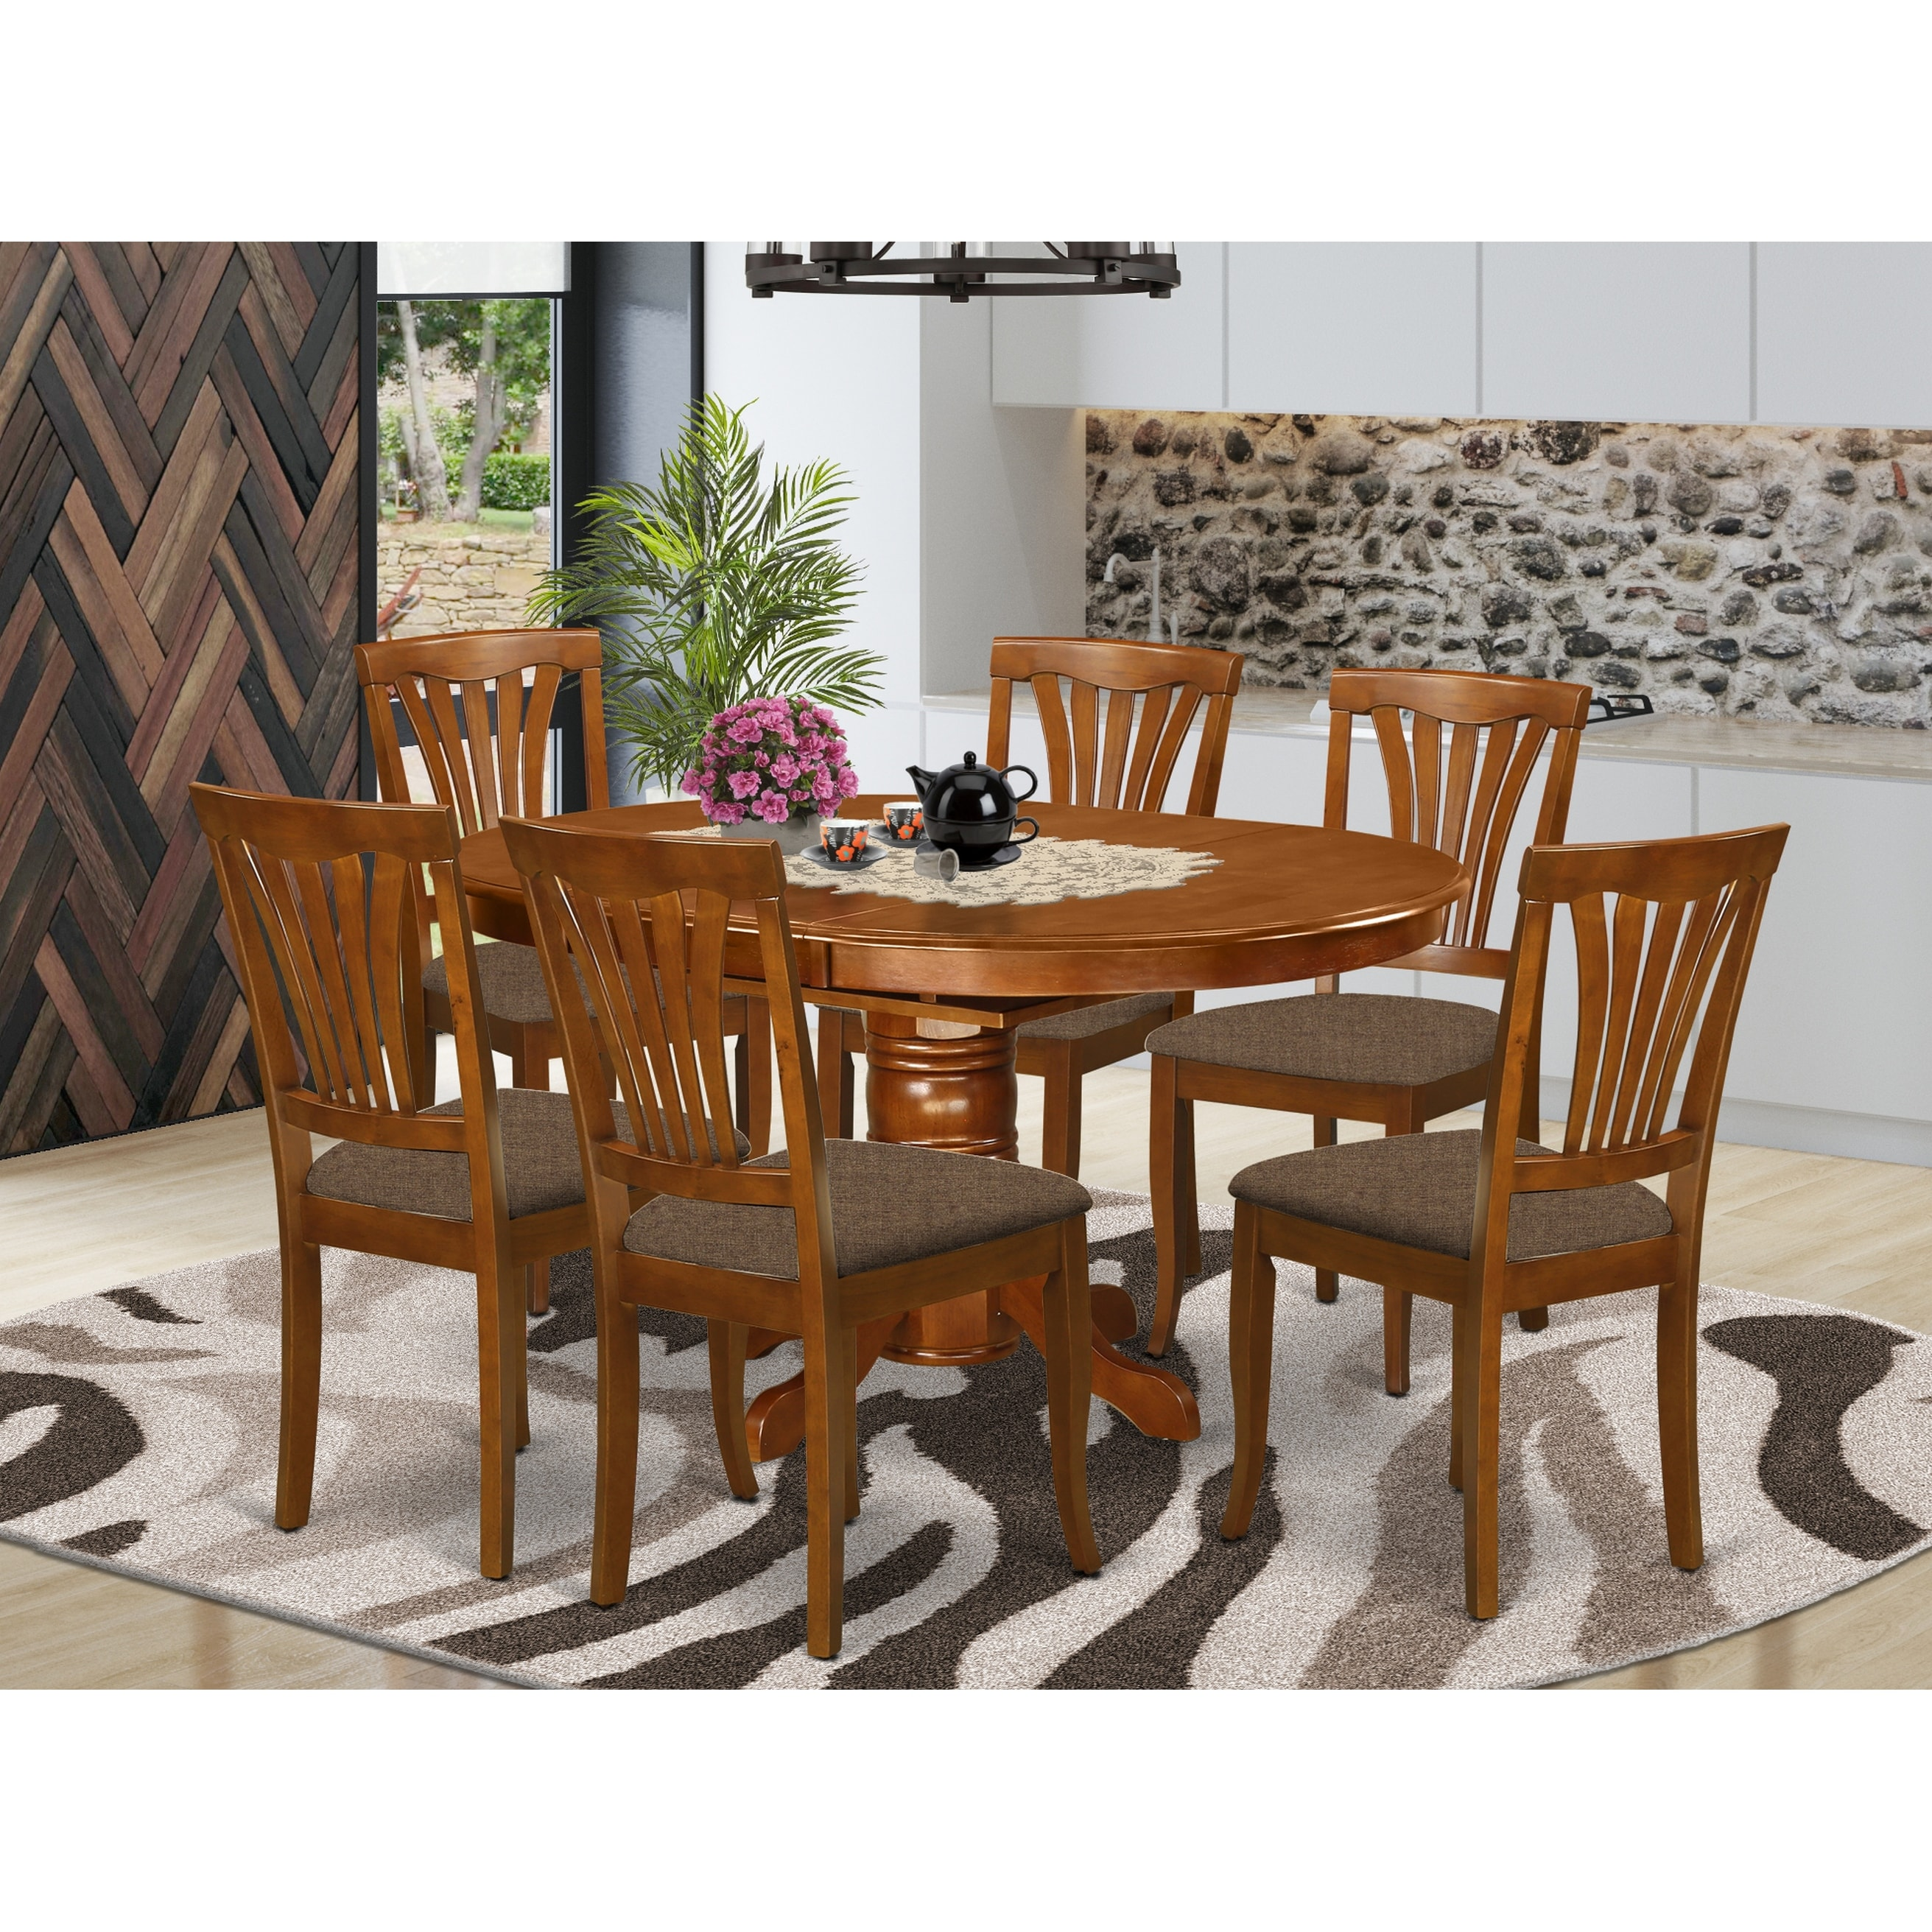 Shop 7 Piece Oval Dining Room Table With Leaf And 6 Dining Chairs Overstock 10296404 Wood Seat